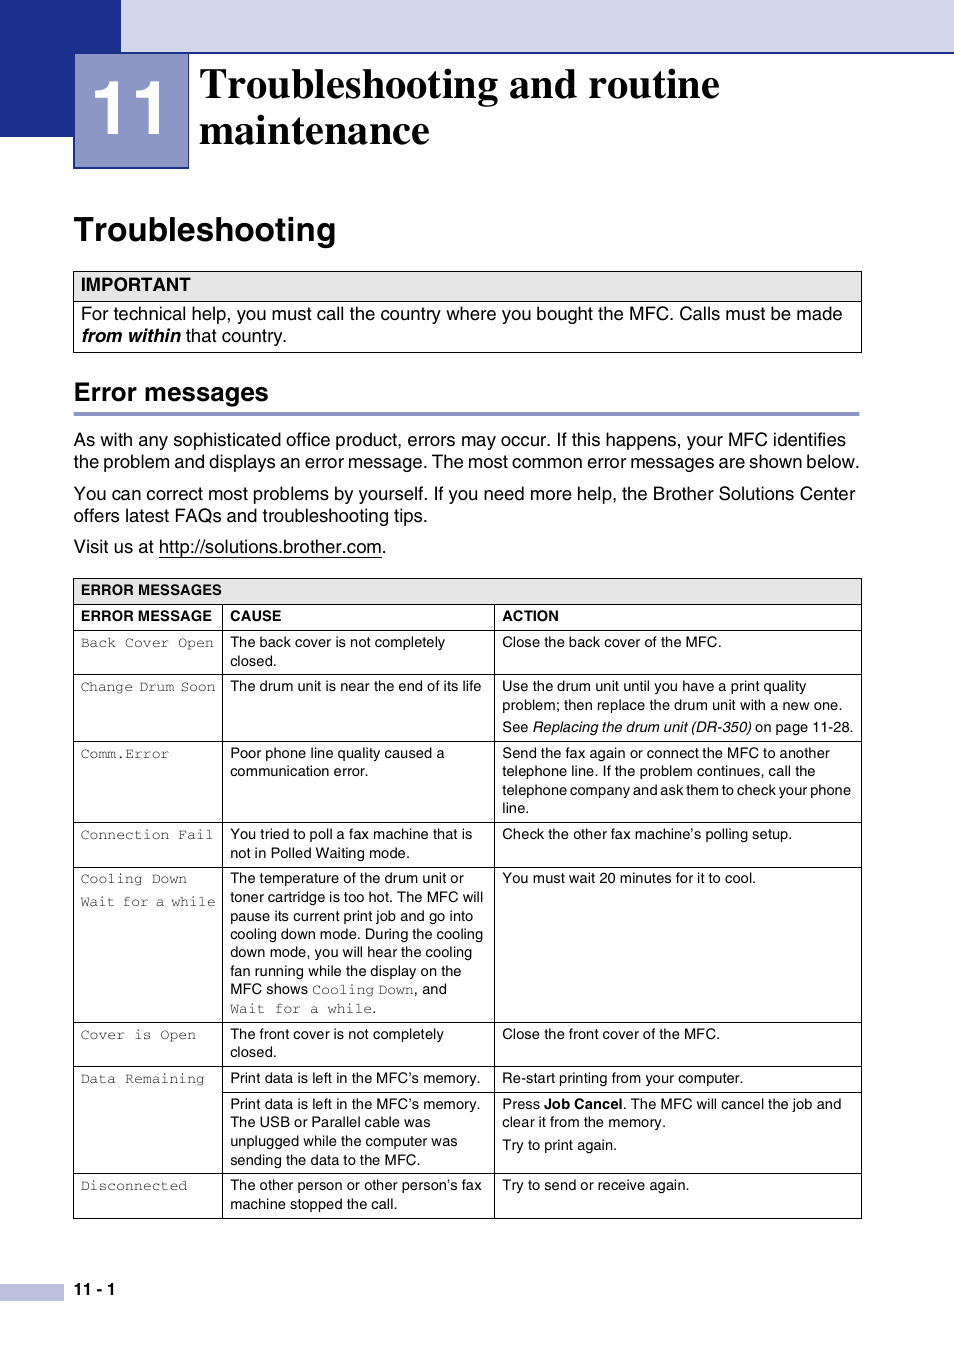 11 troubleshooting and routine maintenance, Troubleshooting